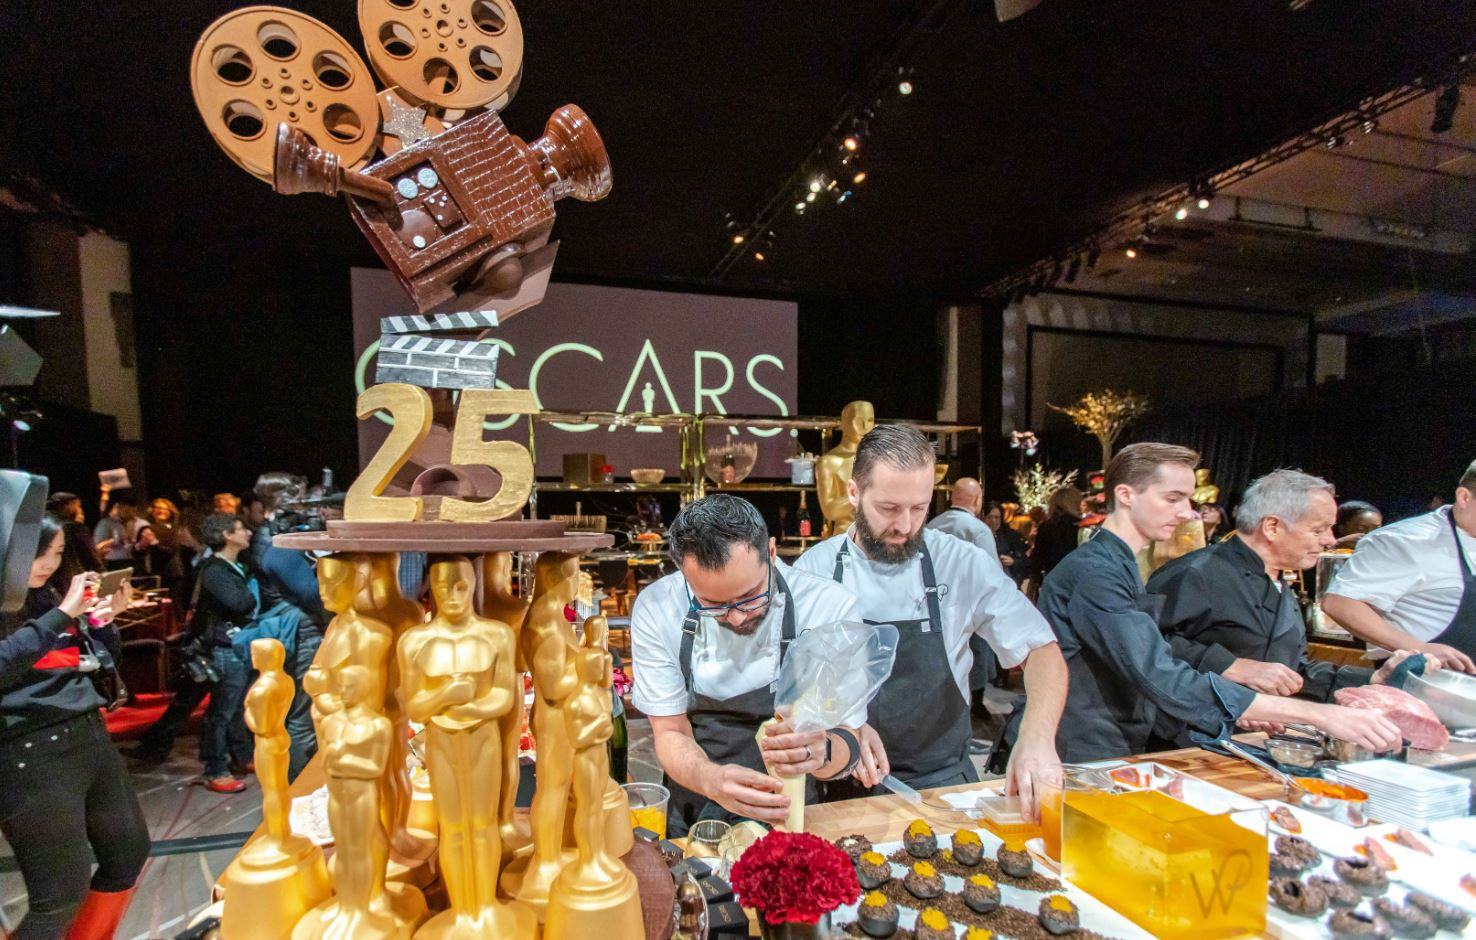 Wolfgang Puck Catering Celebrates 25 Years at the Oscars Governors Ball